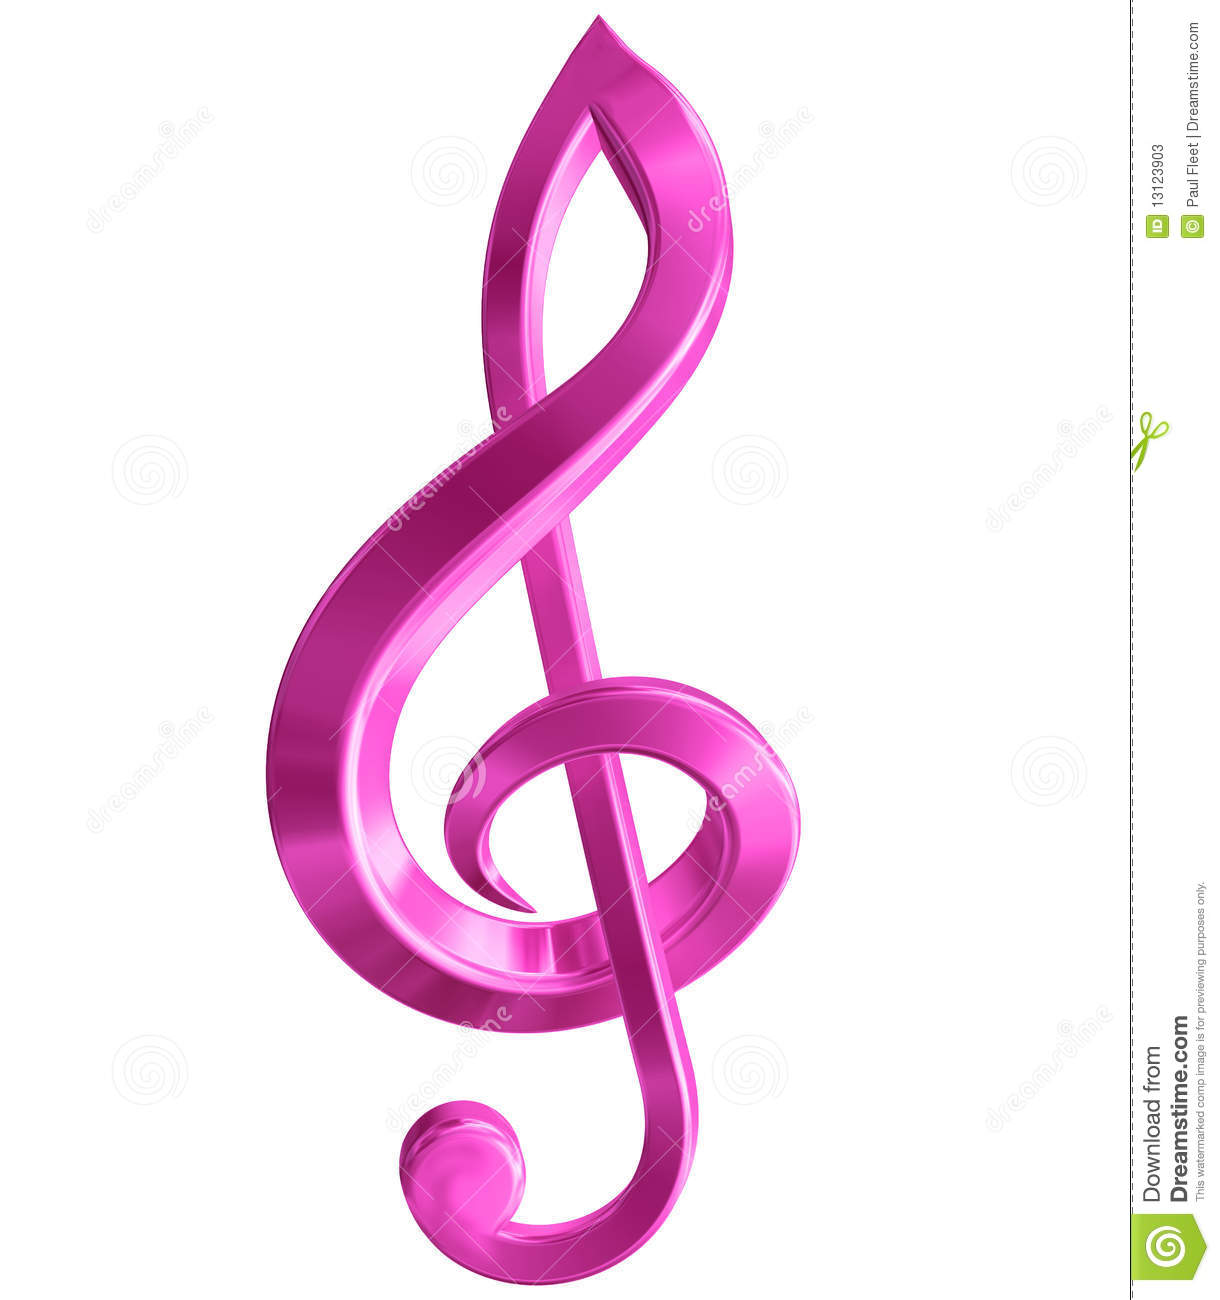 Original isolated illustration of a pink music symbol.